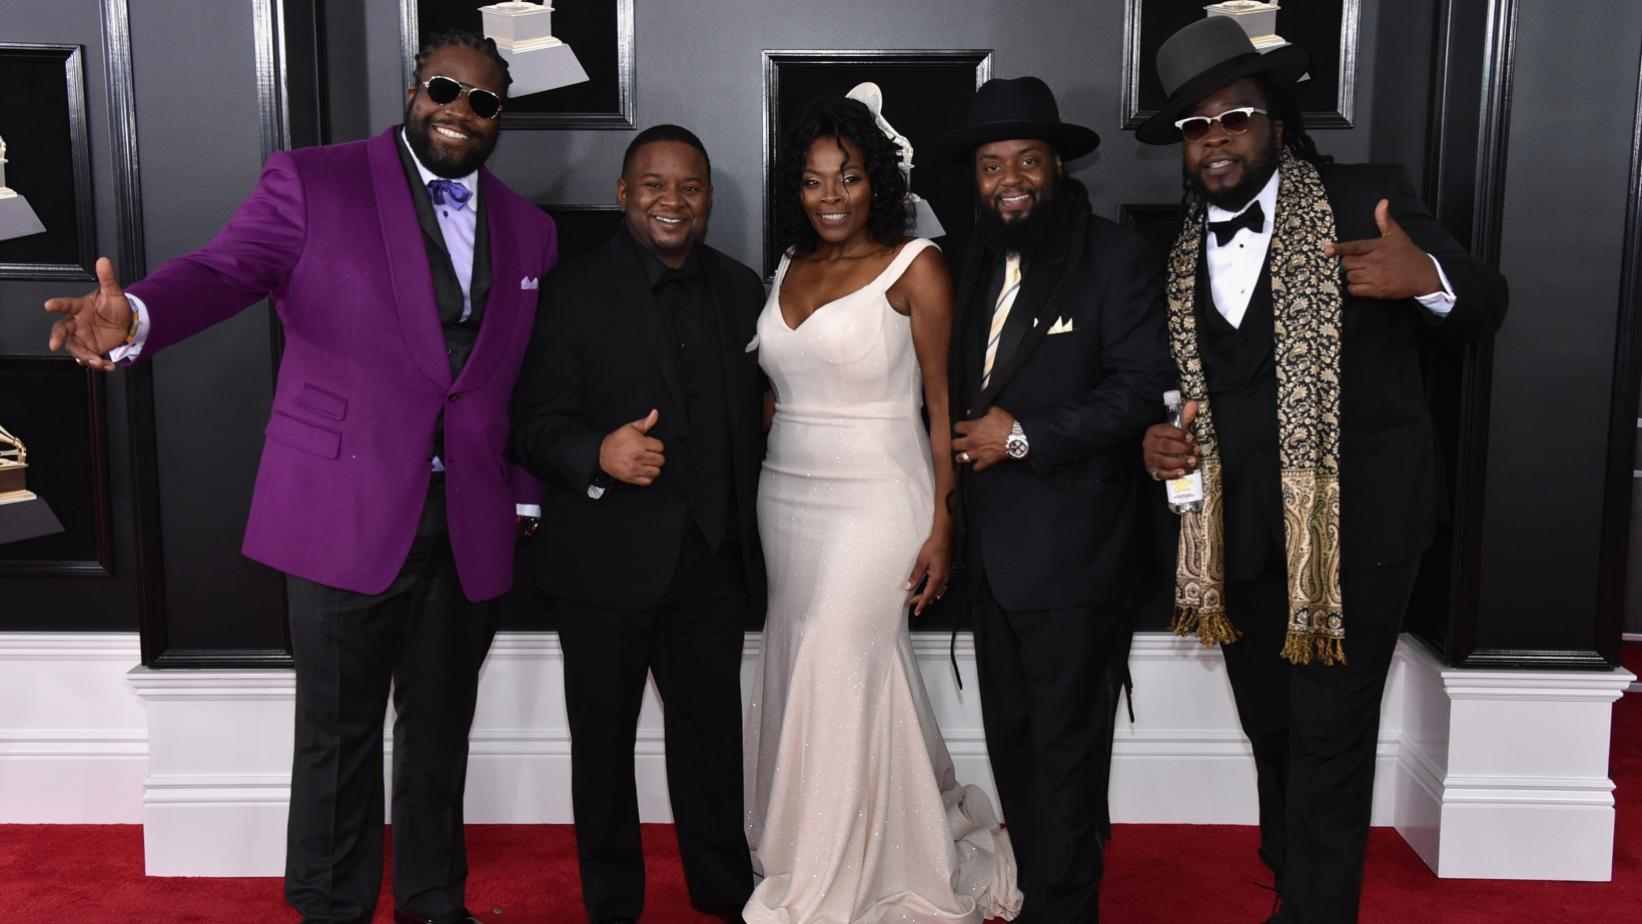 Morgan Heritage on the red carpet